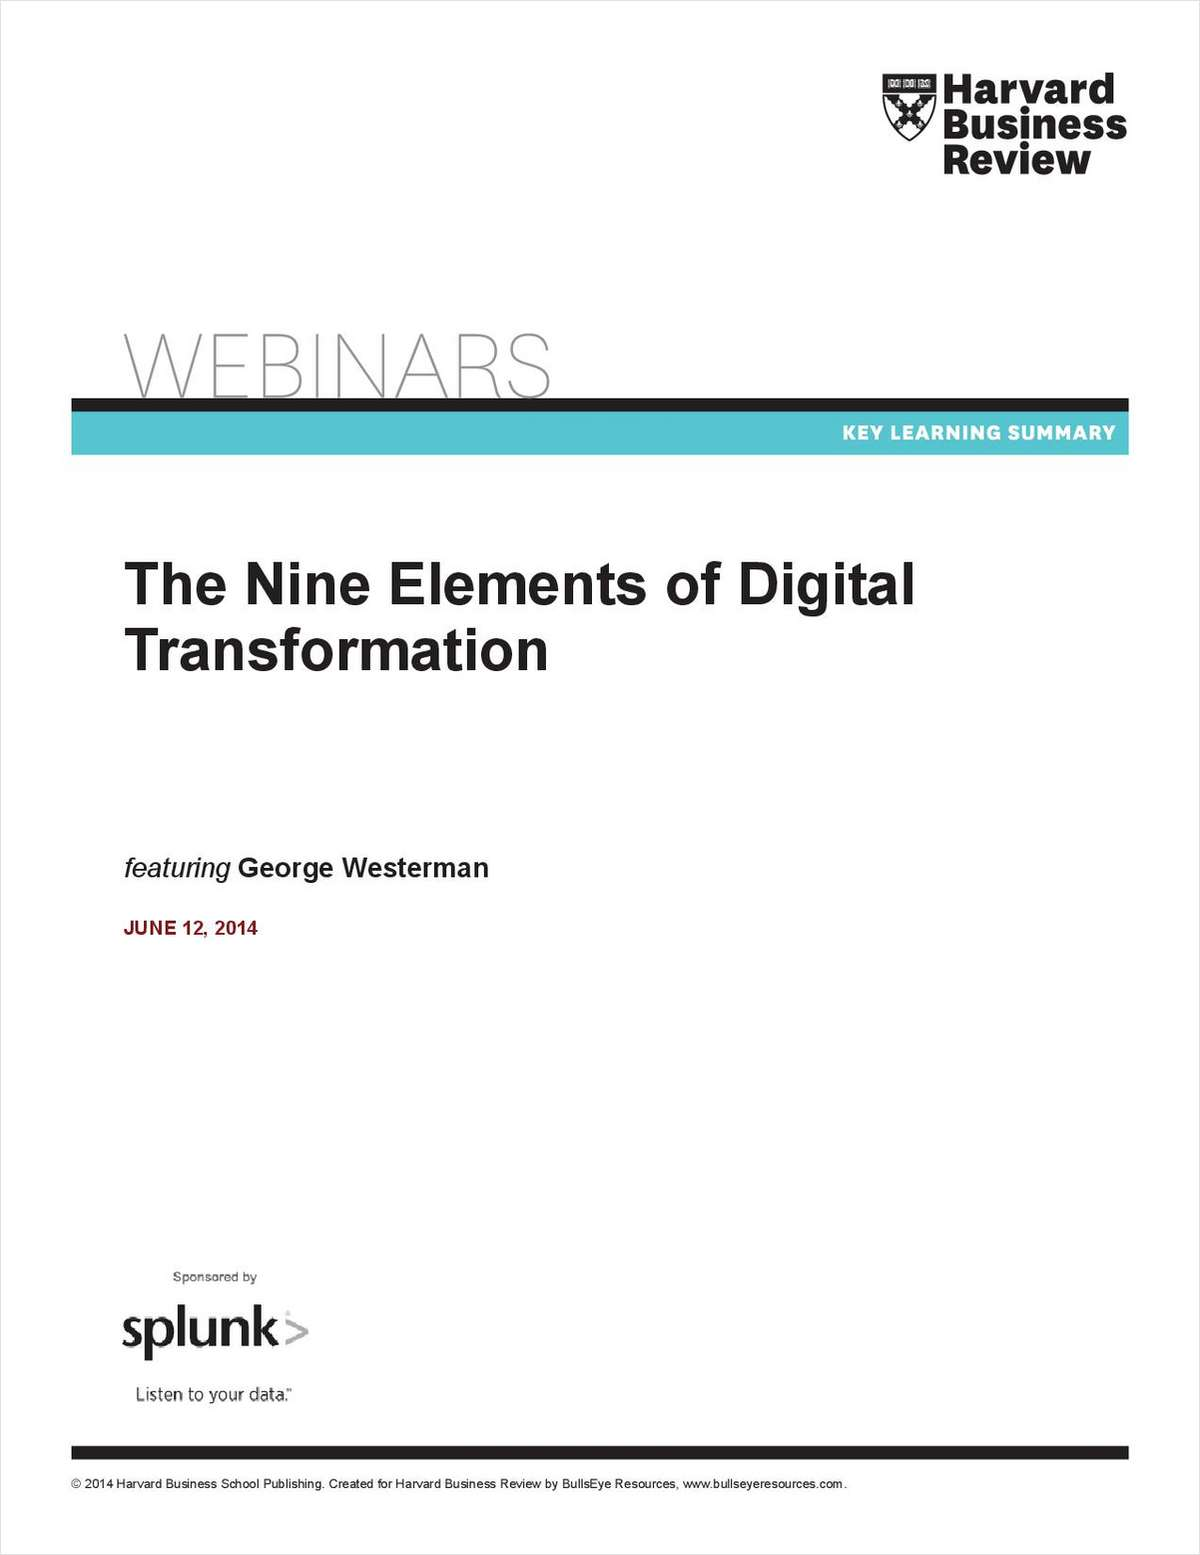 The 9 Elements of Digital Transformation